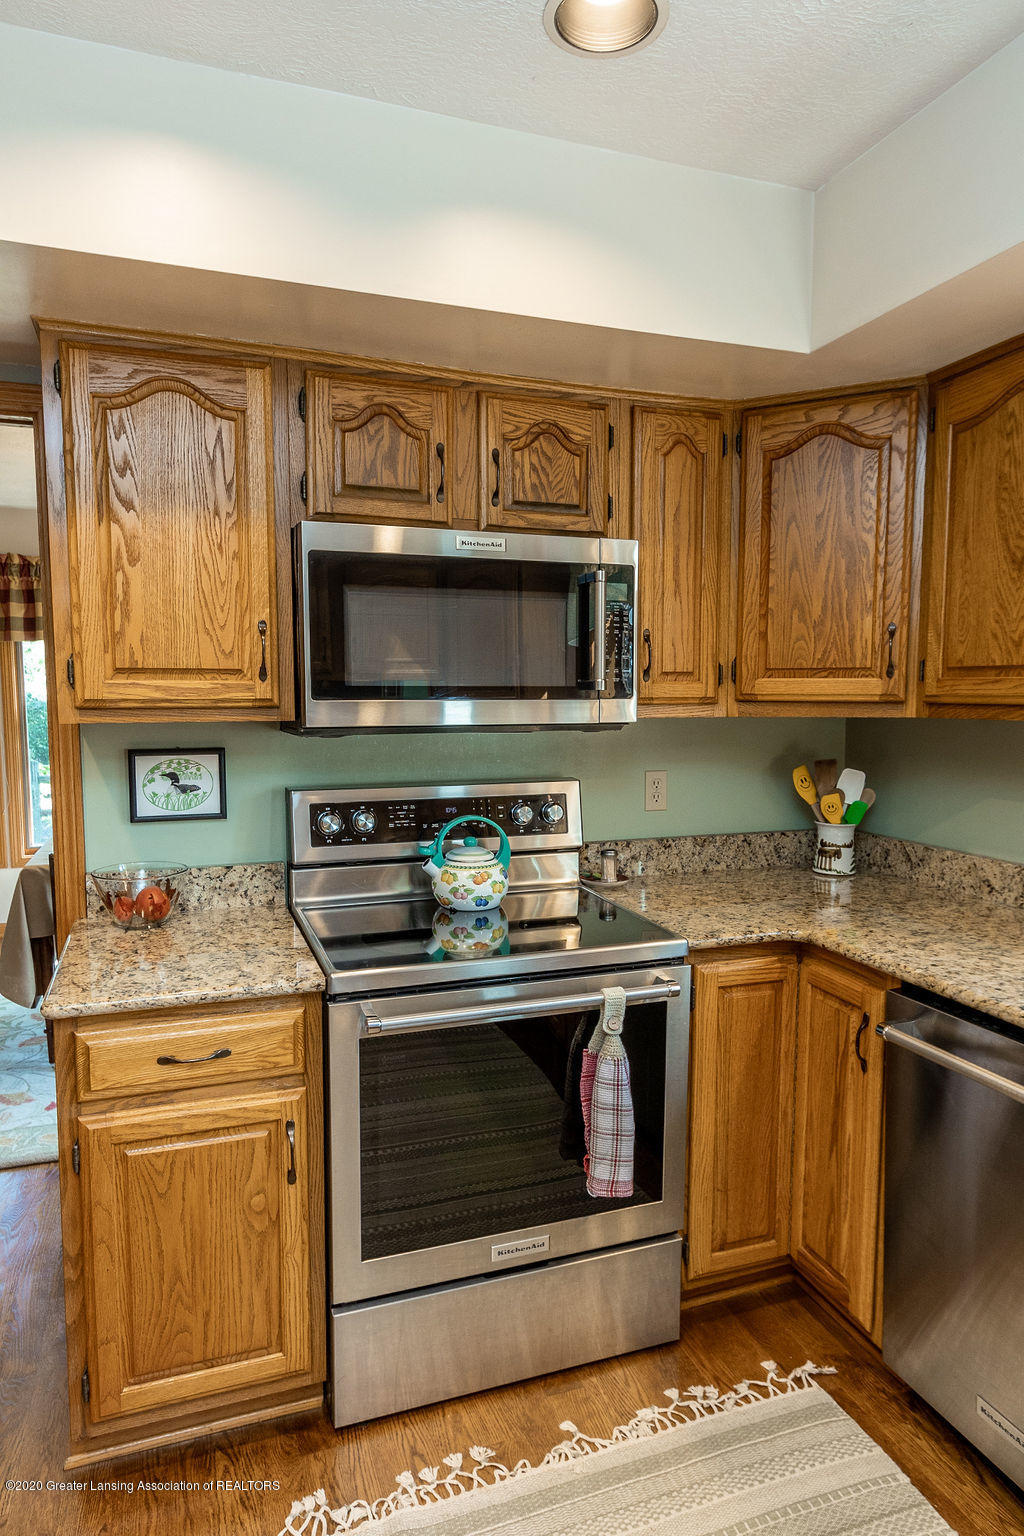 5856 Buttonwood Dr - 14 - 14